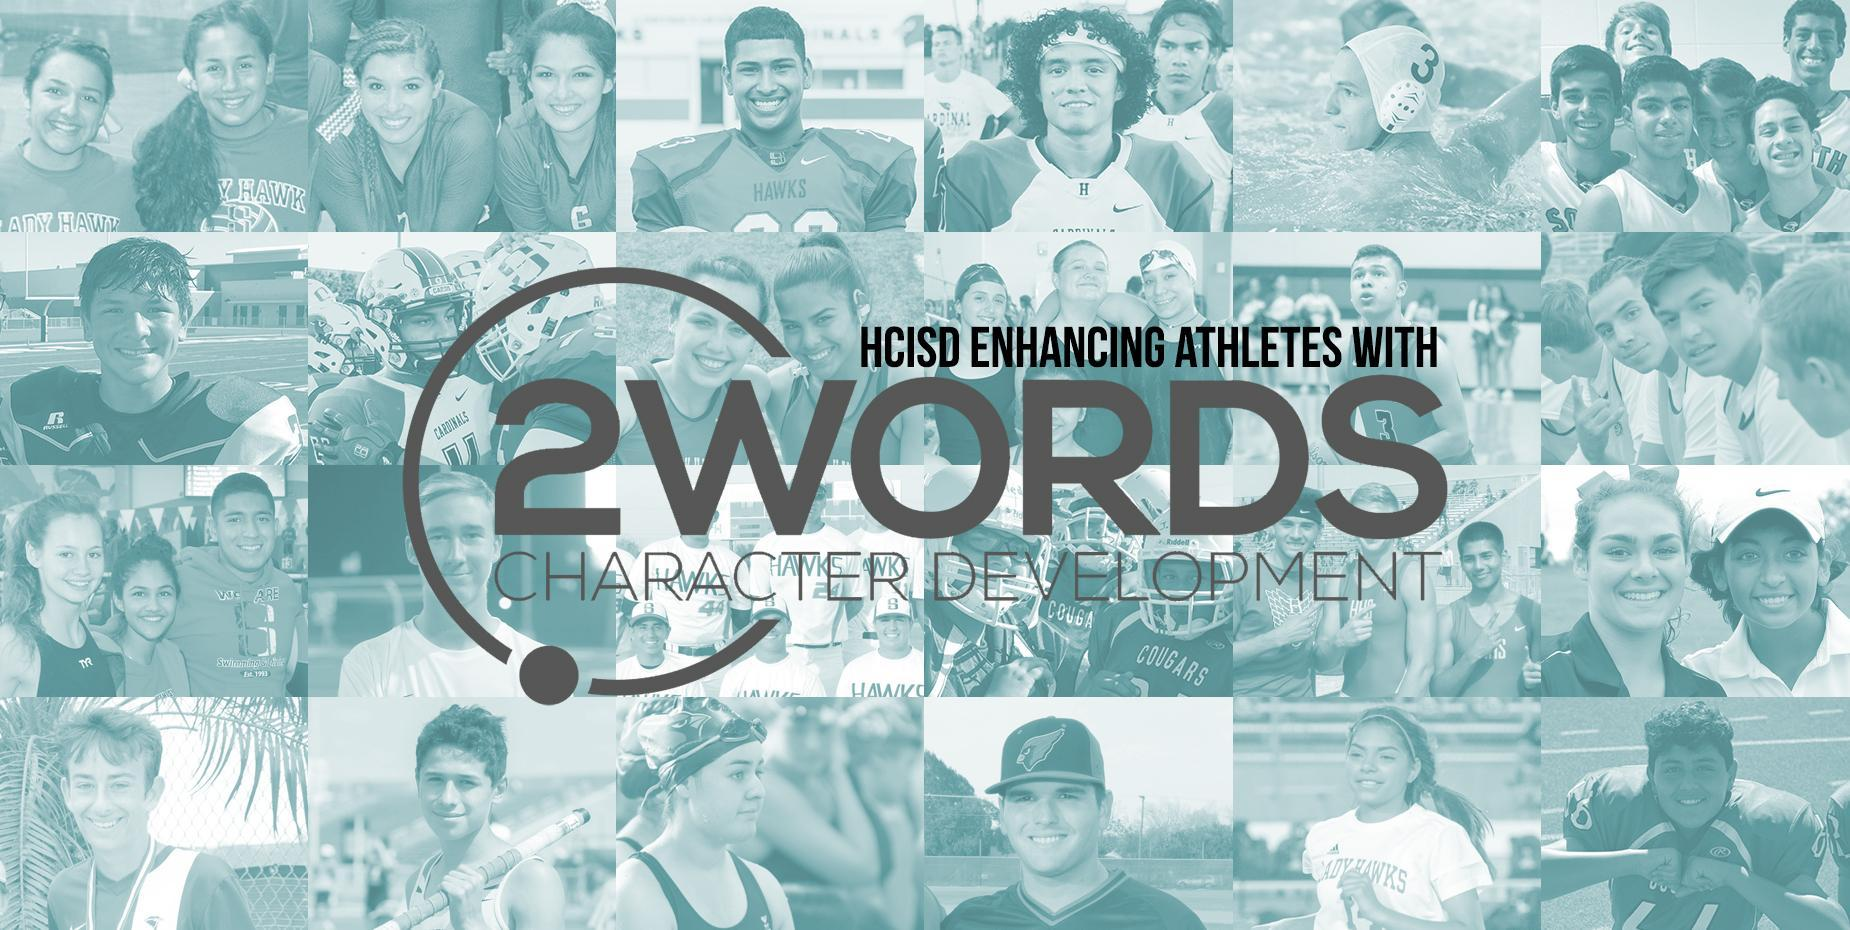 HCISD enhancing athletes with 2Words